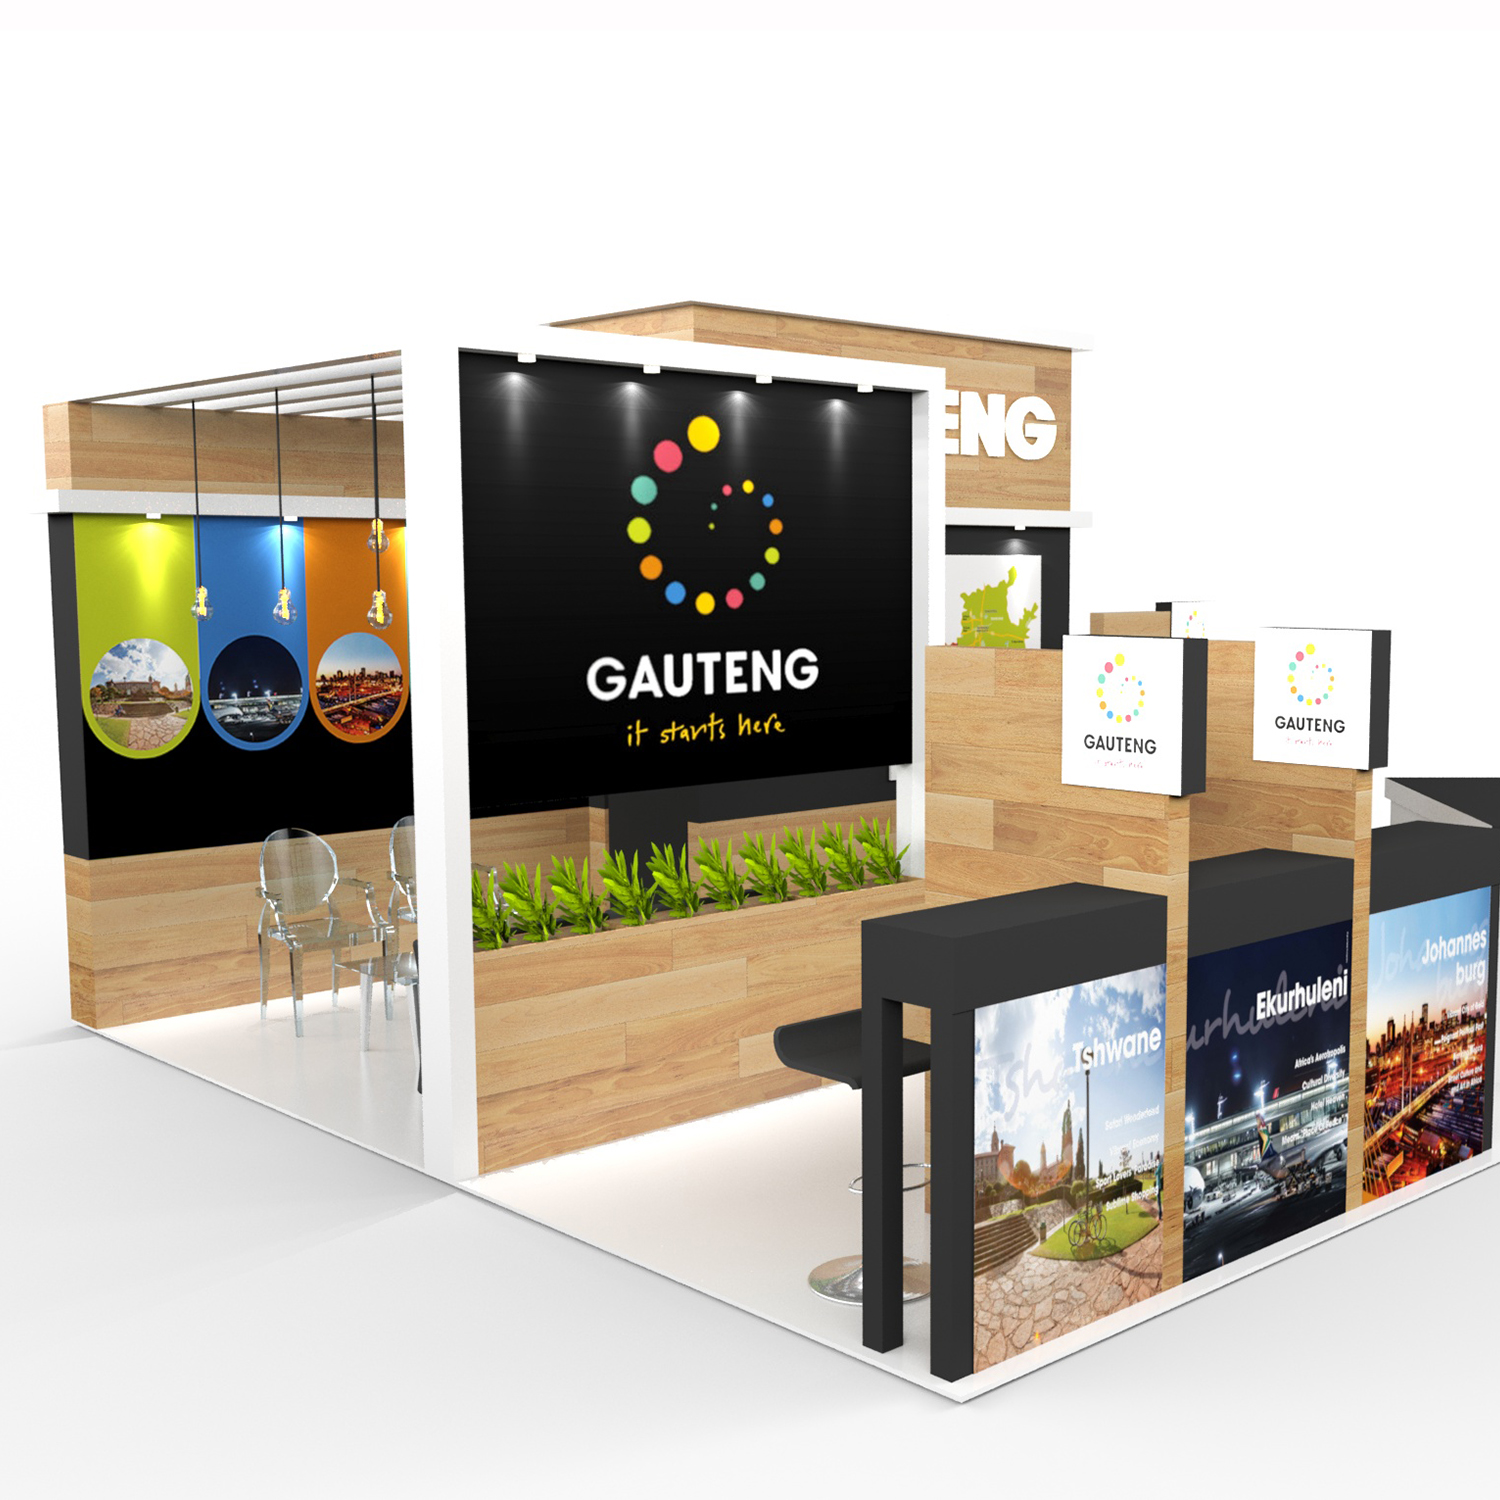 Exhibition Stand Builders Gauteng : Exhibition stand design gauteng tourism authority